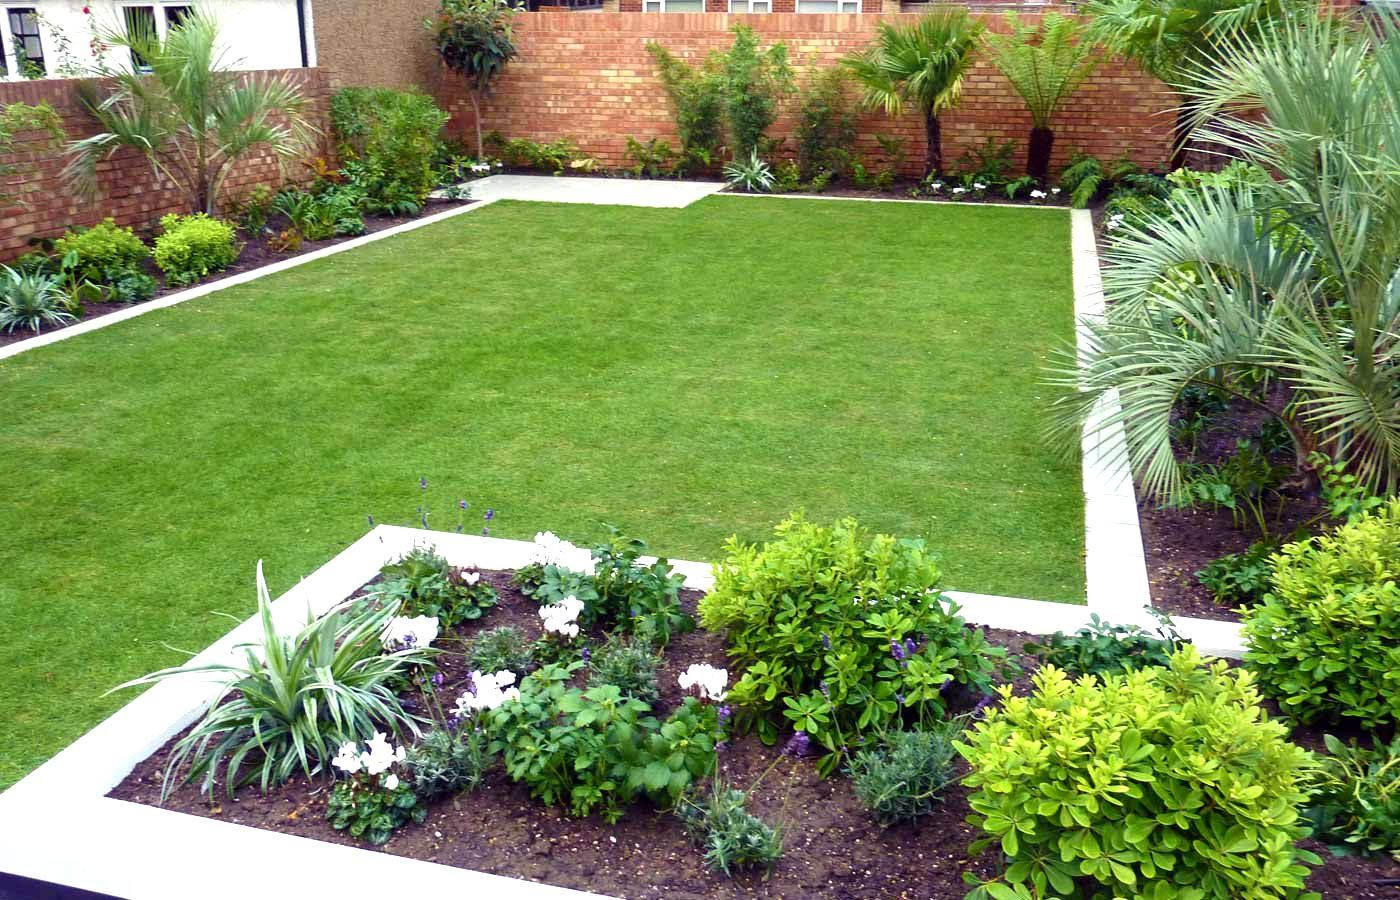 Simple garden designs no fret small garden design for Easy garden design ideas